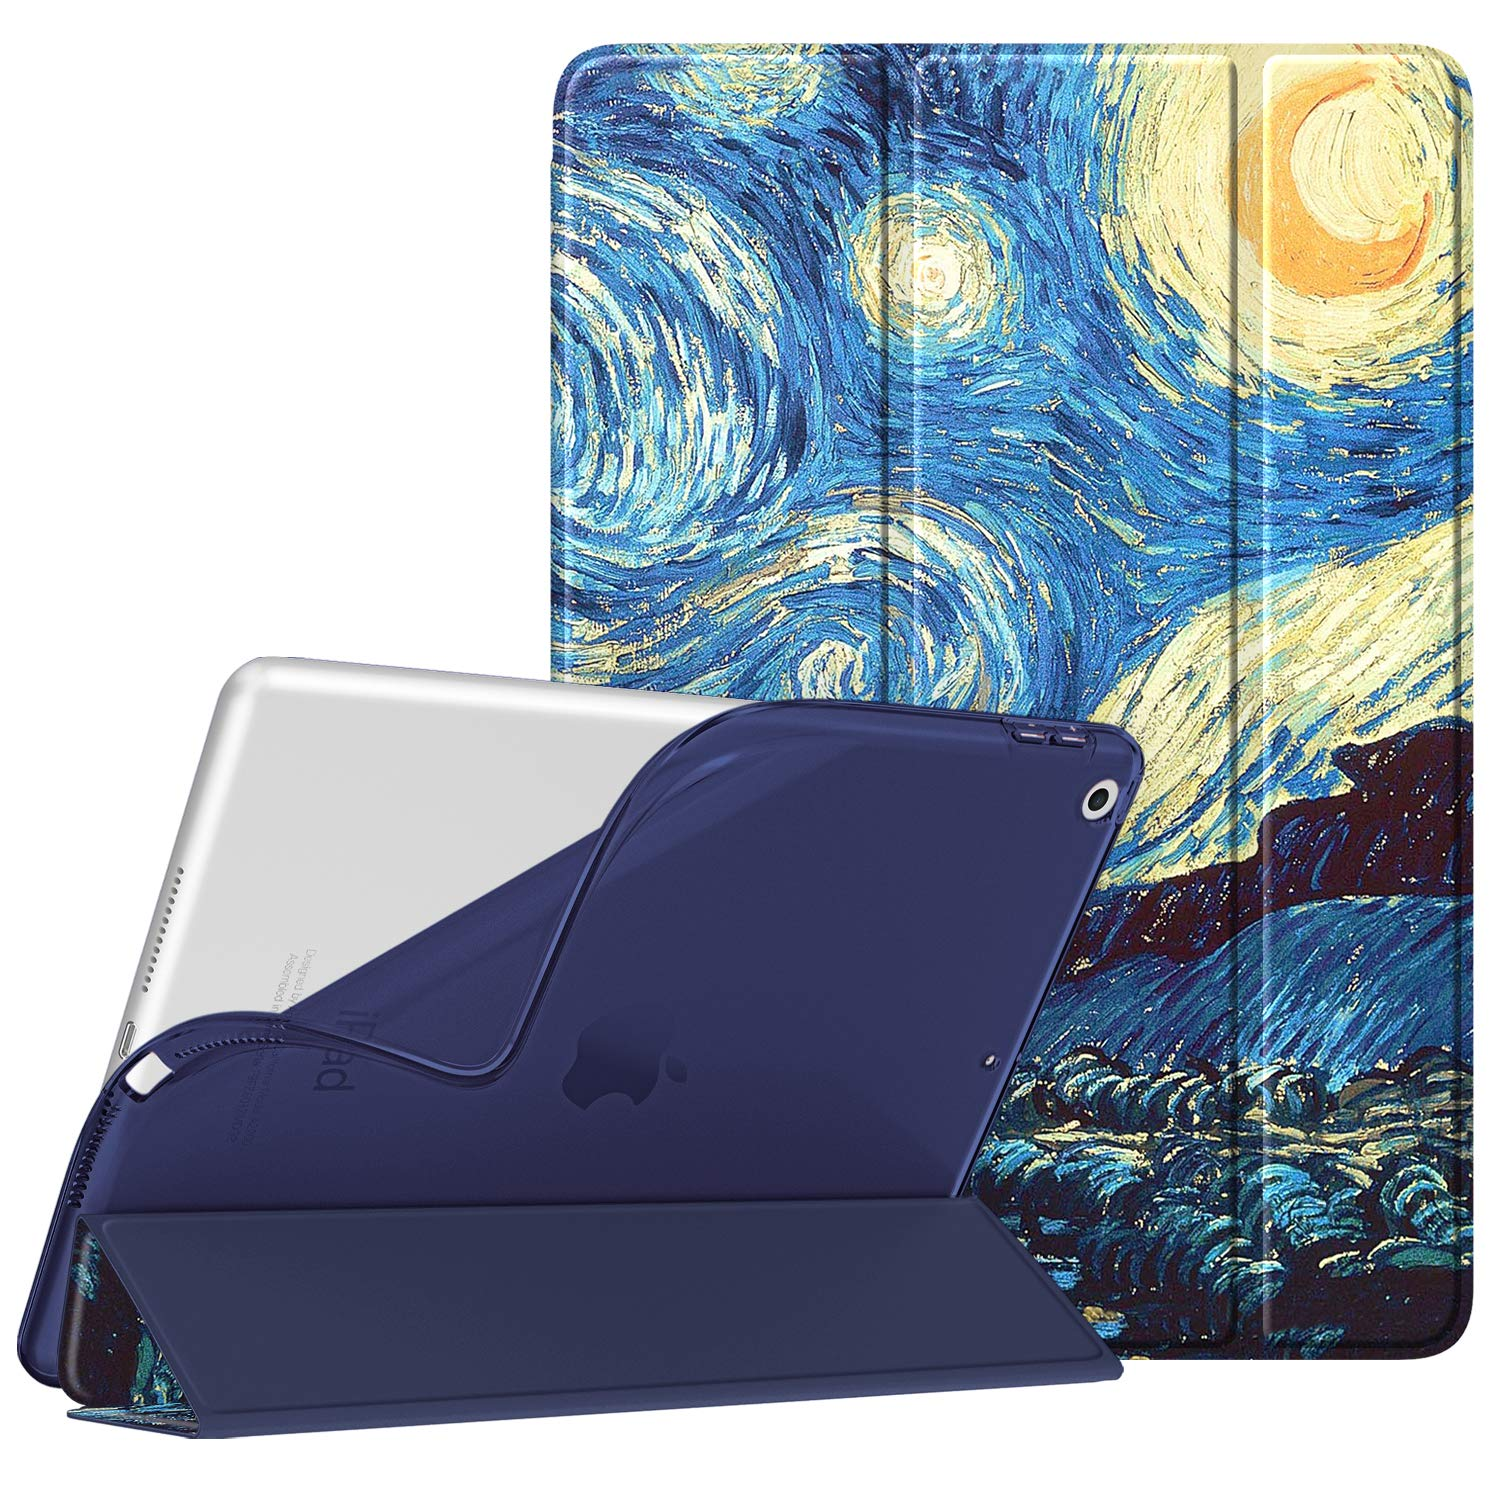 """Fintie SlimShell Case for New iPad 7th Generation 10.2 Inch 2019 - Lightweight Smart Stand with Soft TPU Back Cover Supports Auto Wake/Sleep for iPad 10.2"""" Tablet, Starry Night"""